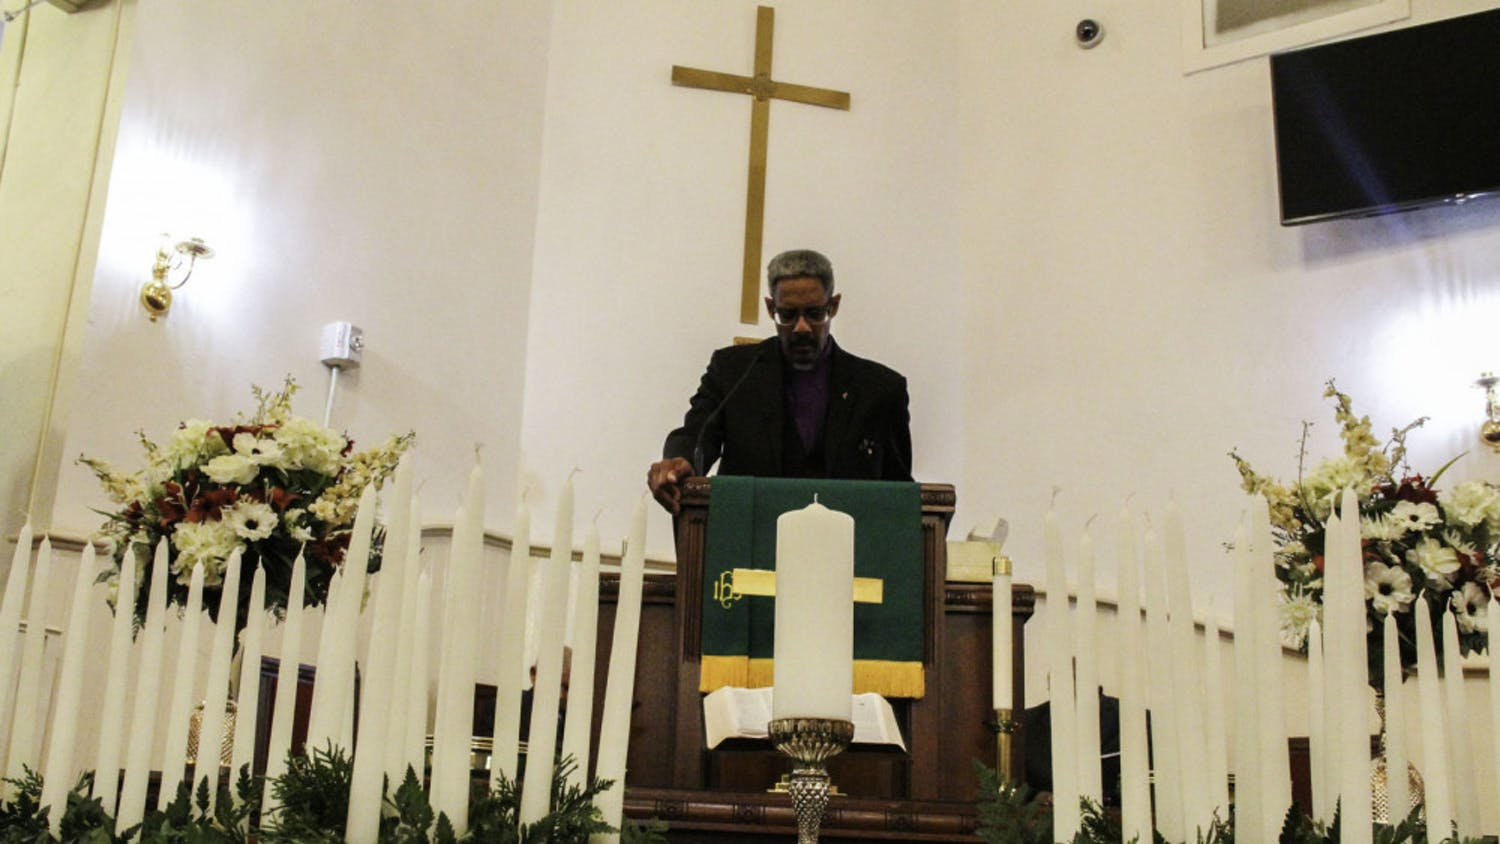 Rev. Milford Griner, a local pastor, community leader and advocate, speaks to the audience on the importance of fighting the racism that continues to pervade society today at the Mount Pleasant United Methodist Church memorial service Friday evening.